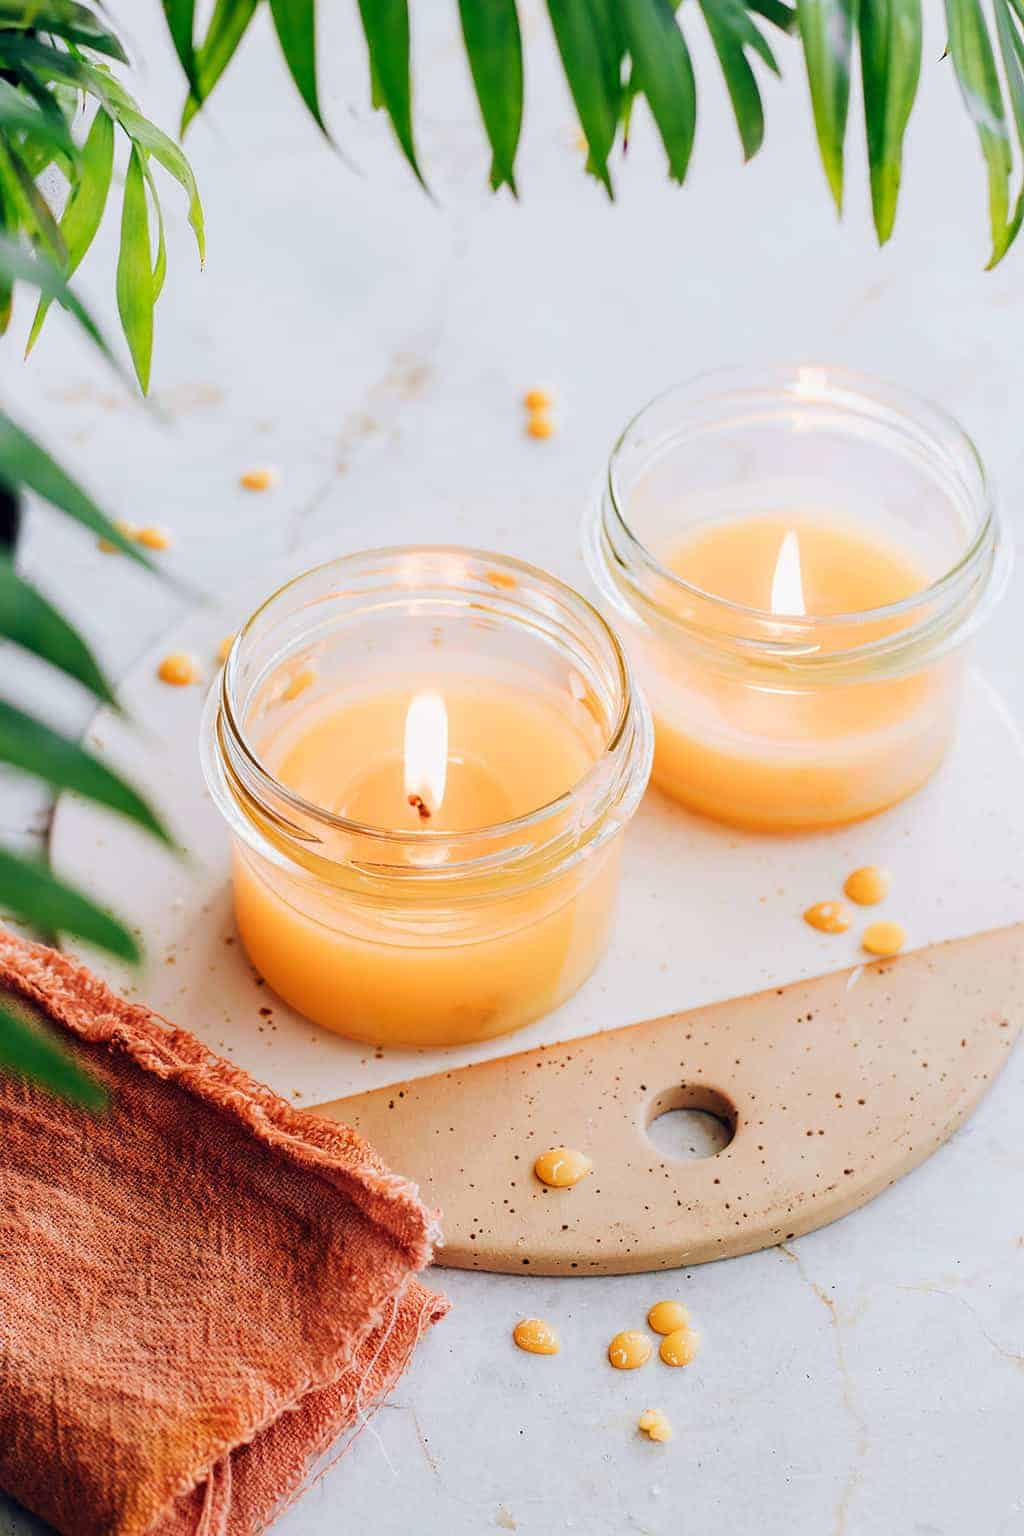 How to Make Beeswax Candles in the Oven